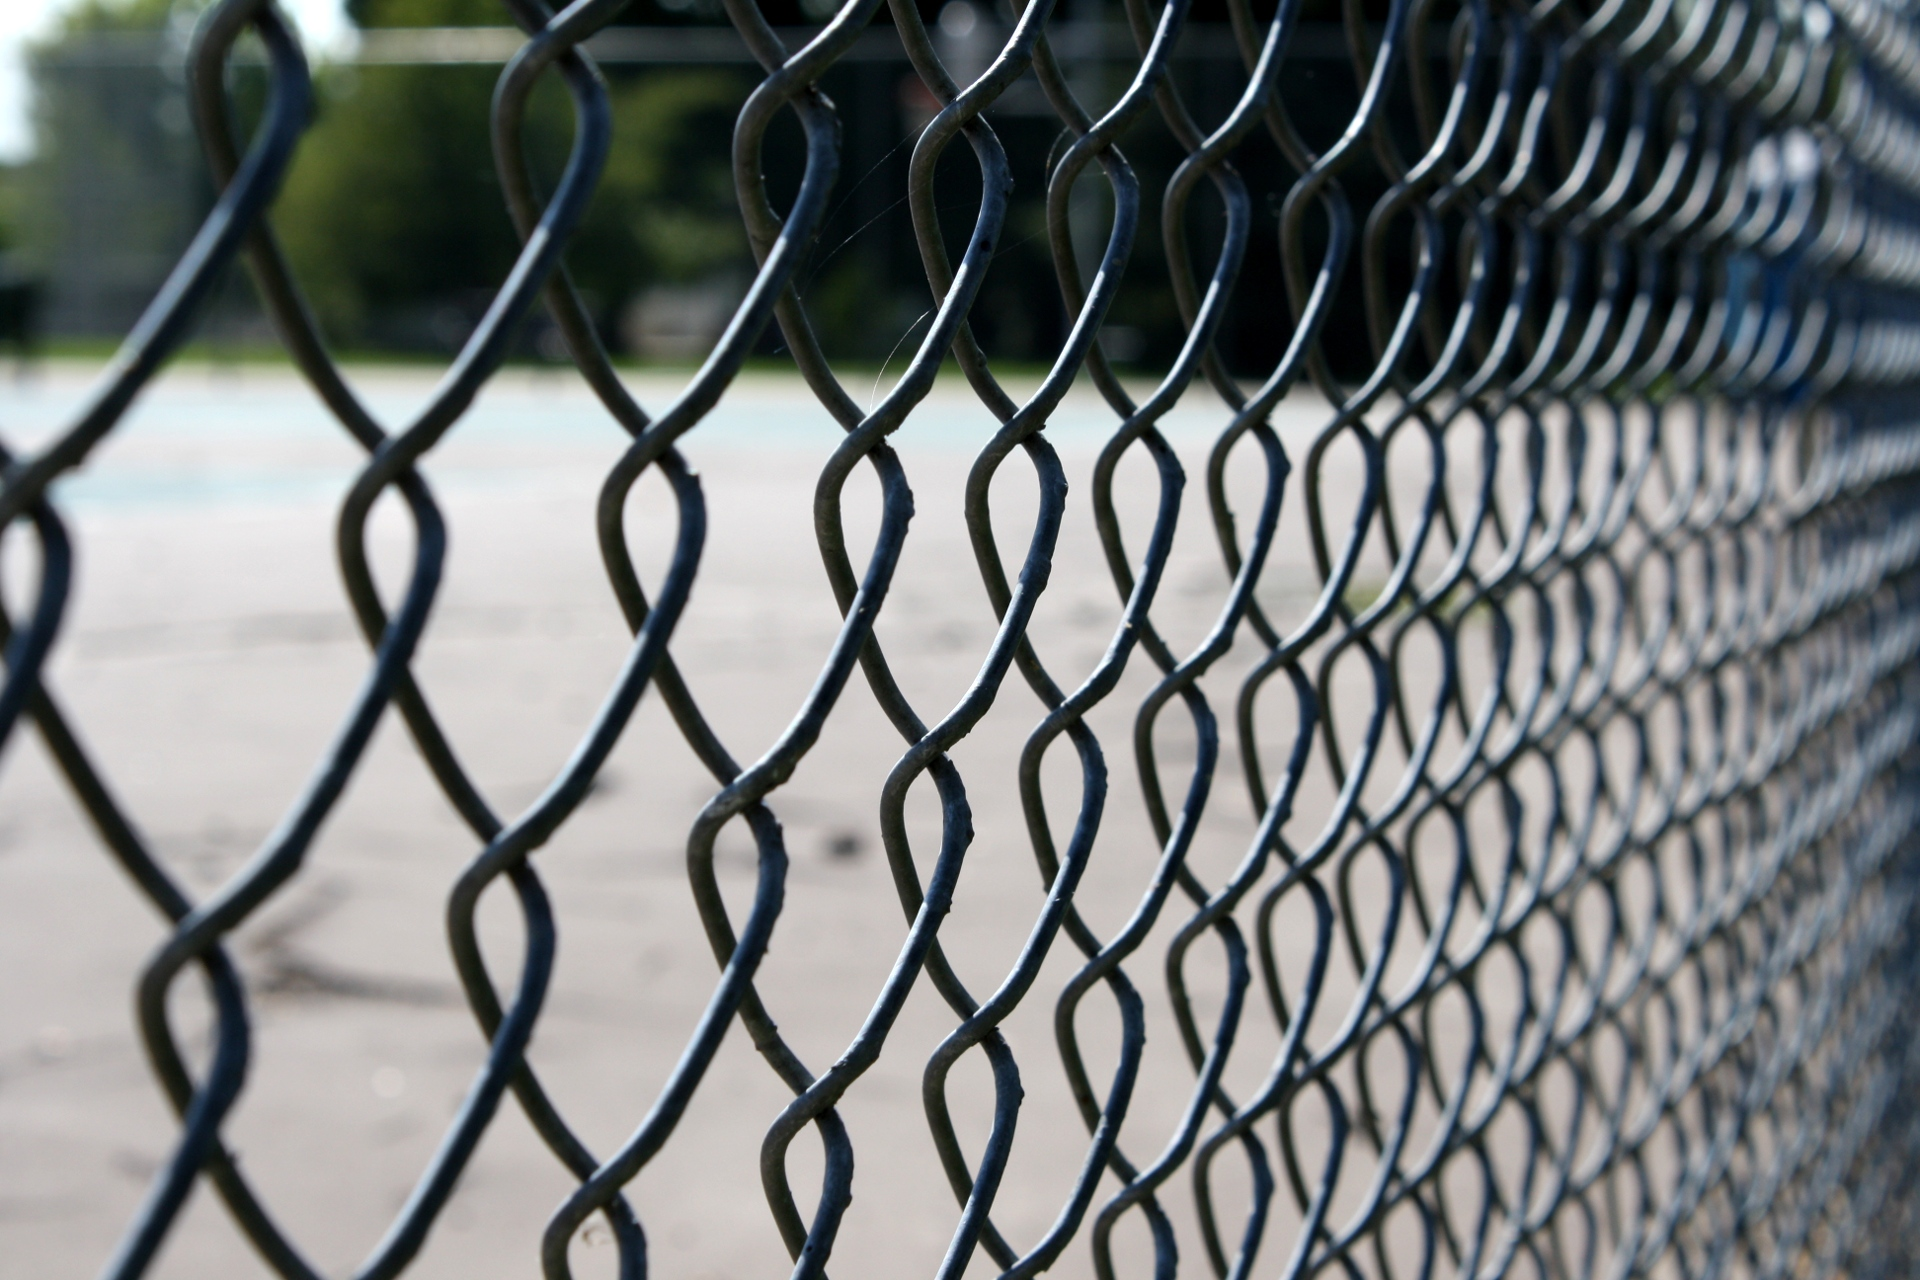 Fence Supplies: Fence Supplies Home Depot